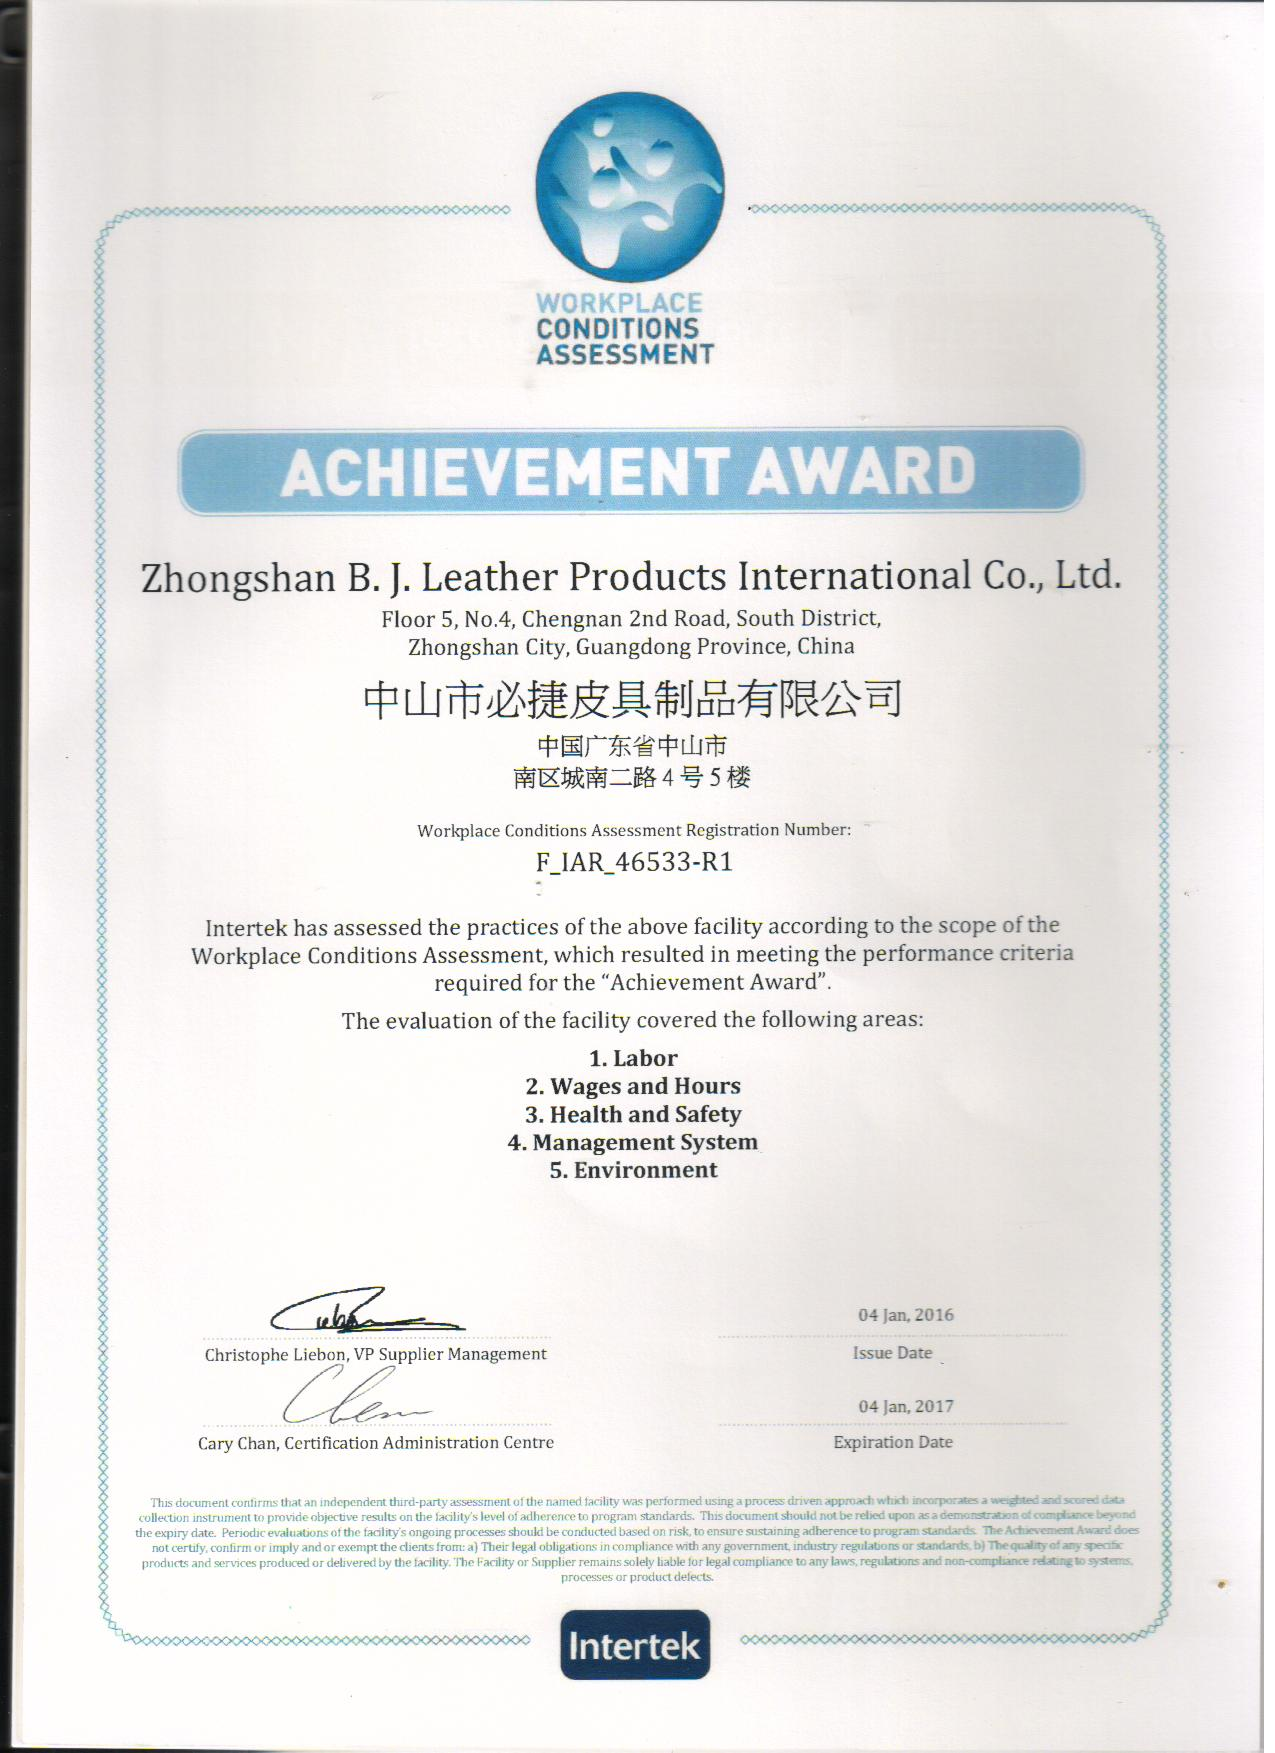 Record of Participation by Intertek